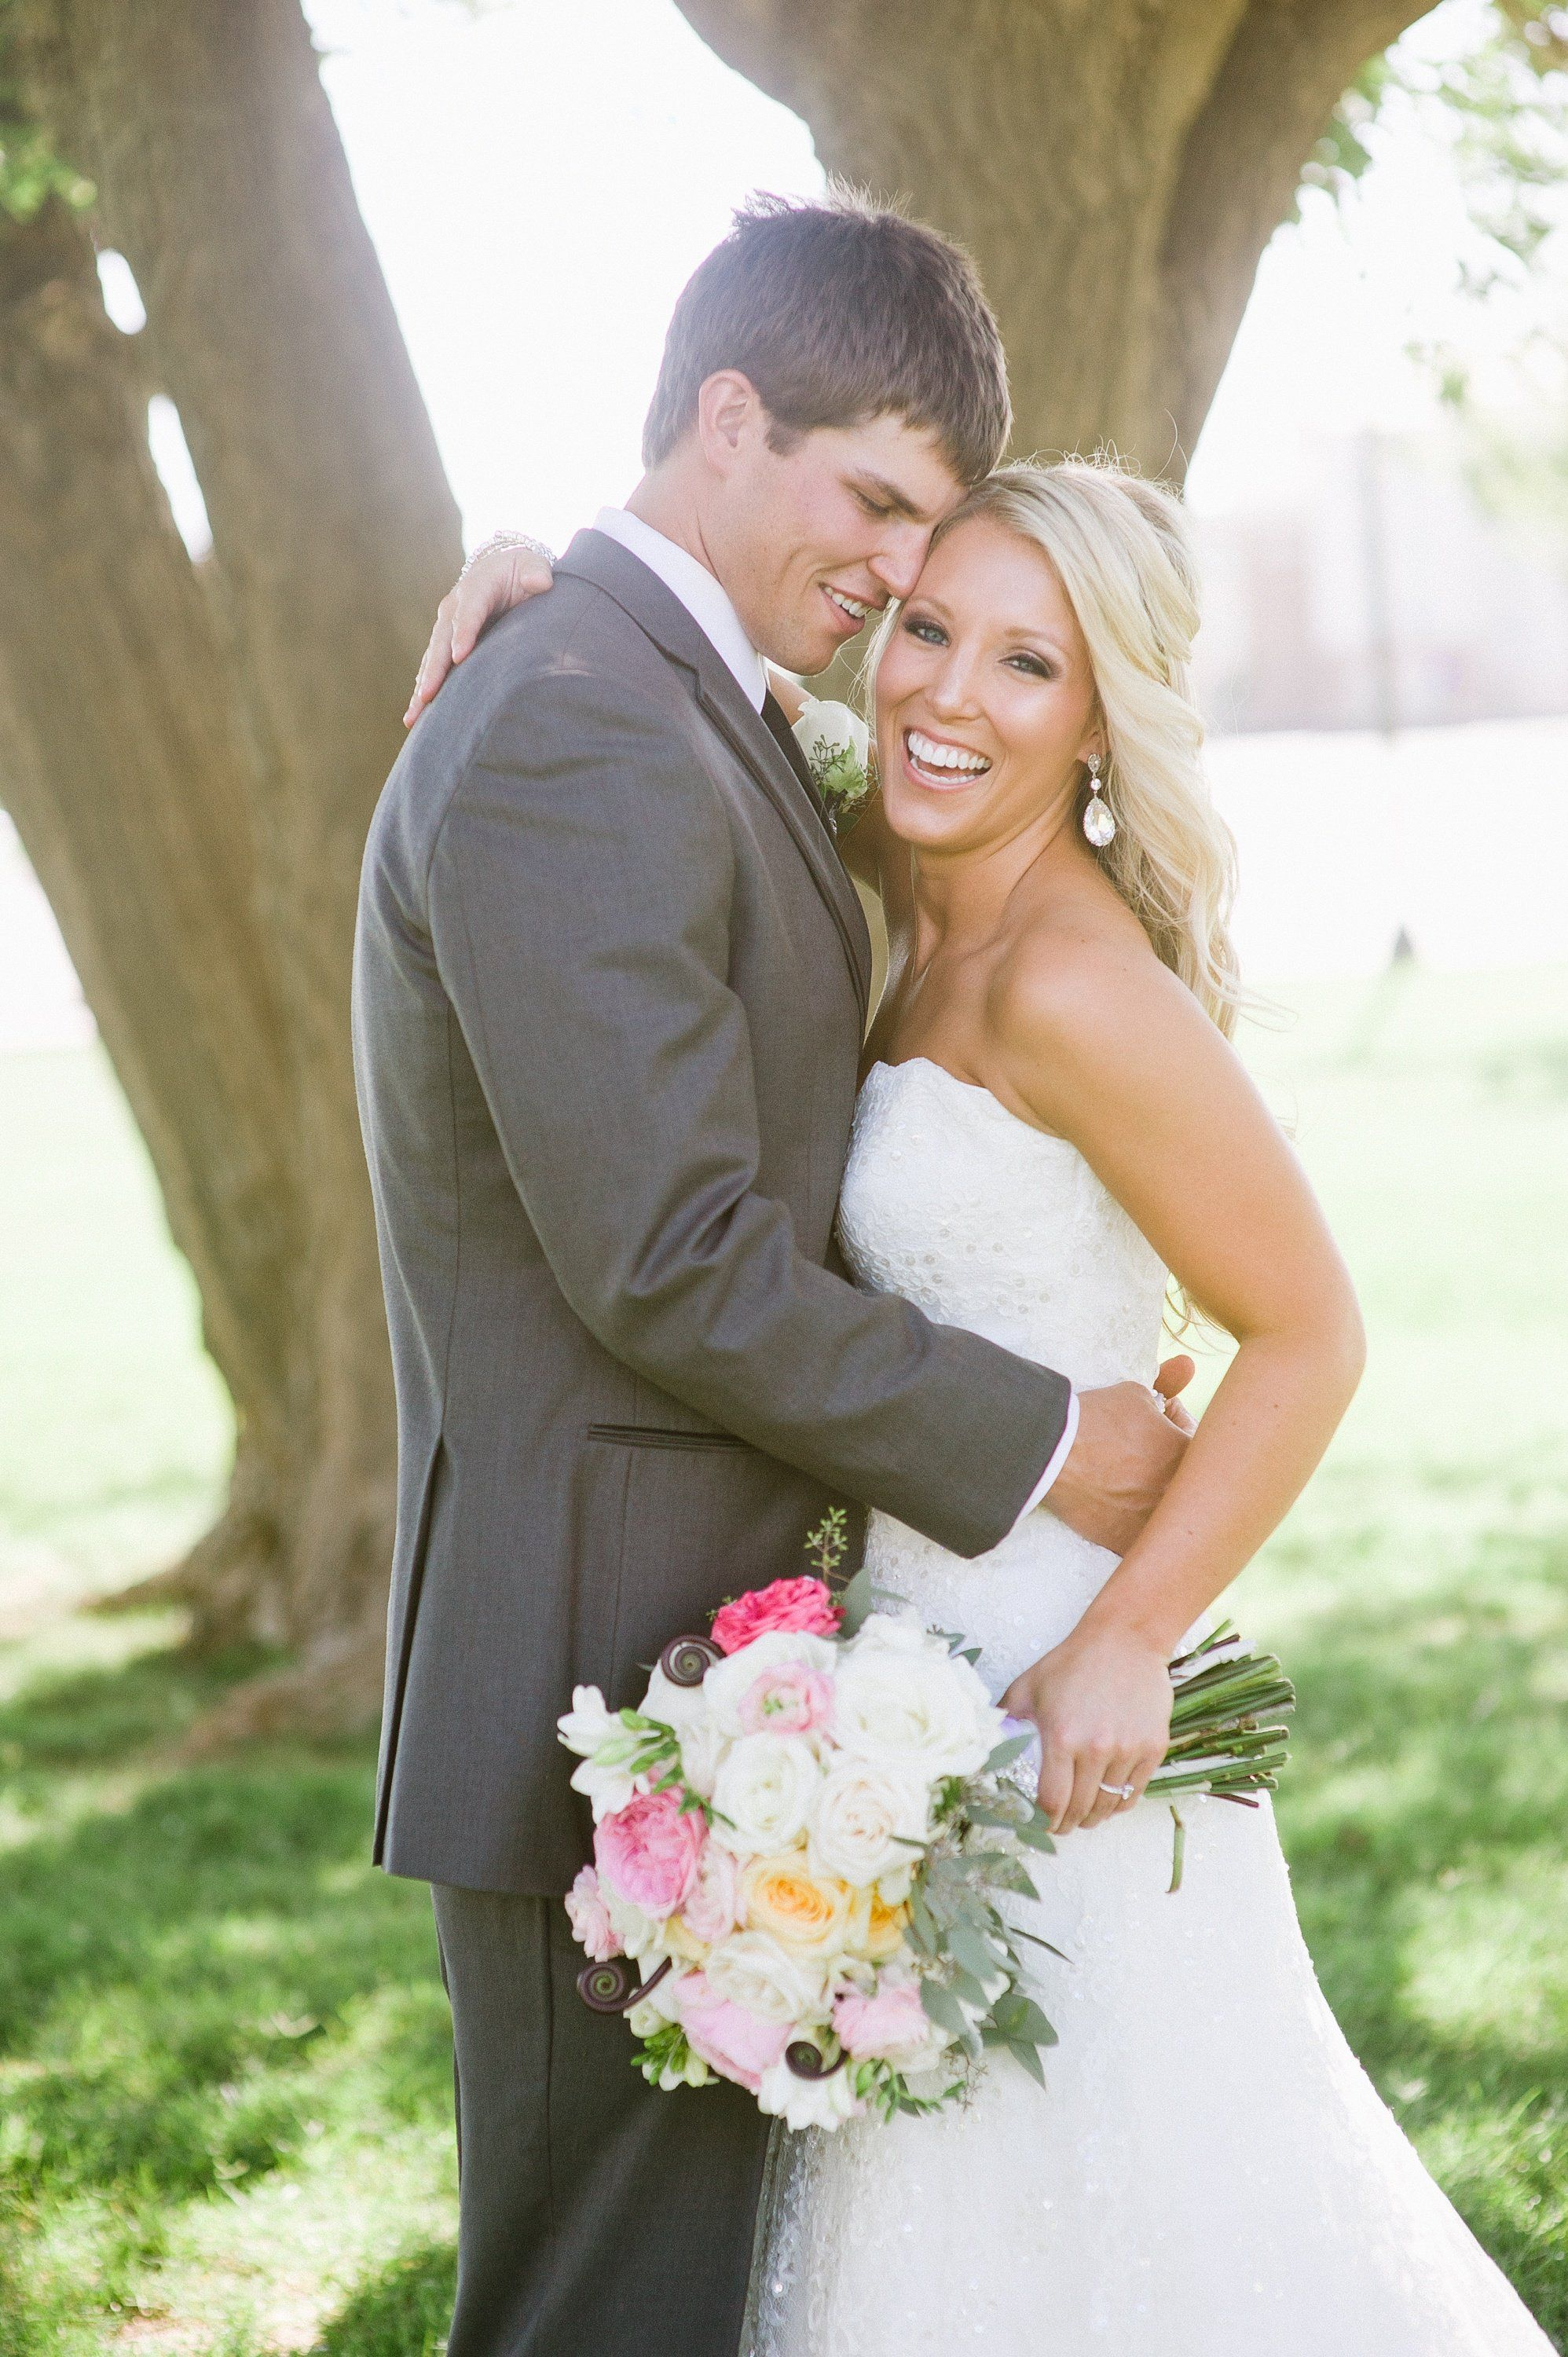 A texas tech university wedding in lubbock texas featured on a texas tech university wedding in lubbock texas featured on theknot bridal gown ombrellifo Images